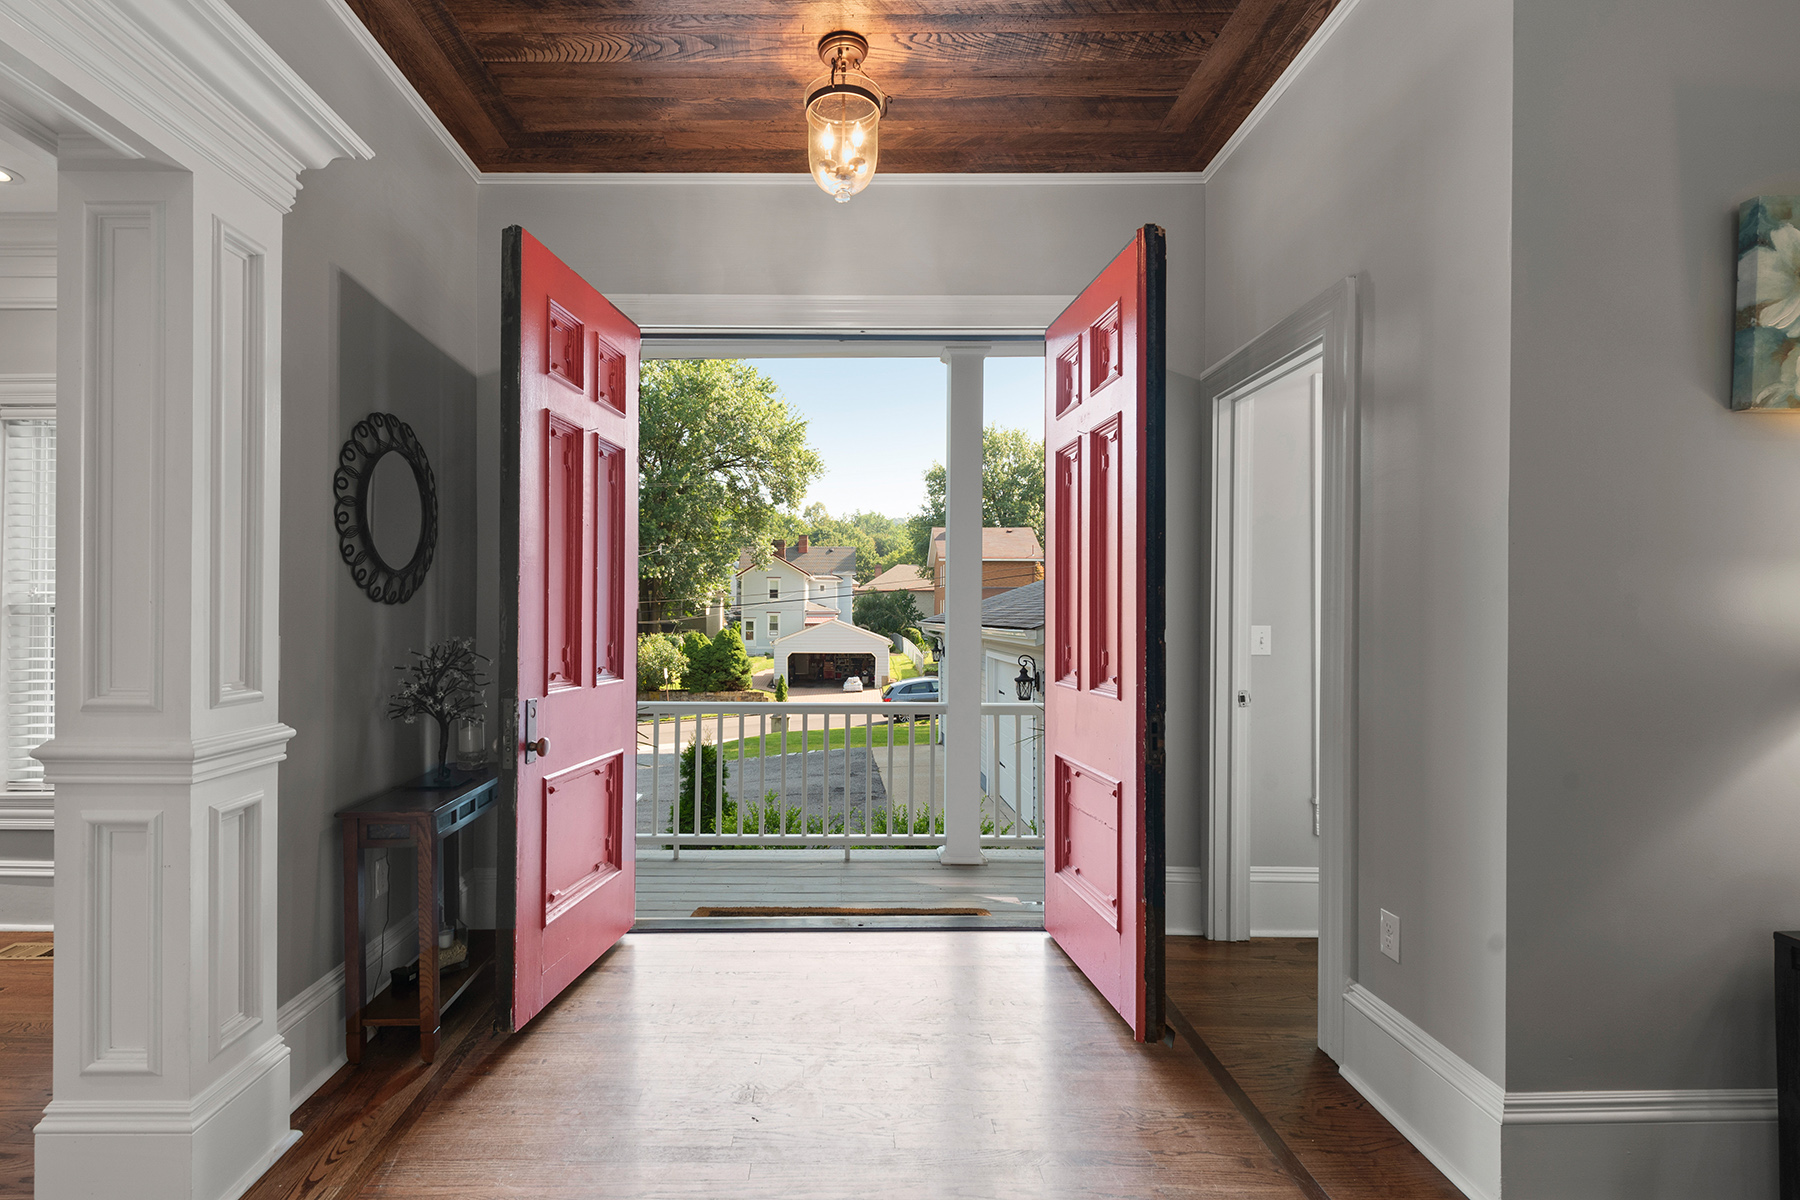 Single Family Homes for Sale at Sewickley Village Revival- 223 Elwick Street 223 Elwick Street Sewickley, Pennsylvania 15143 United States